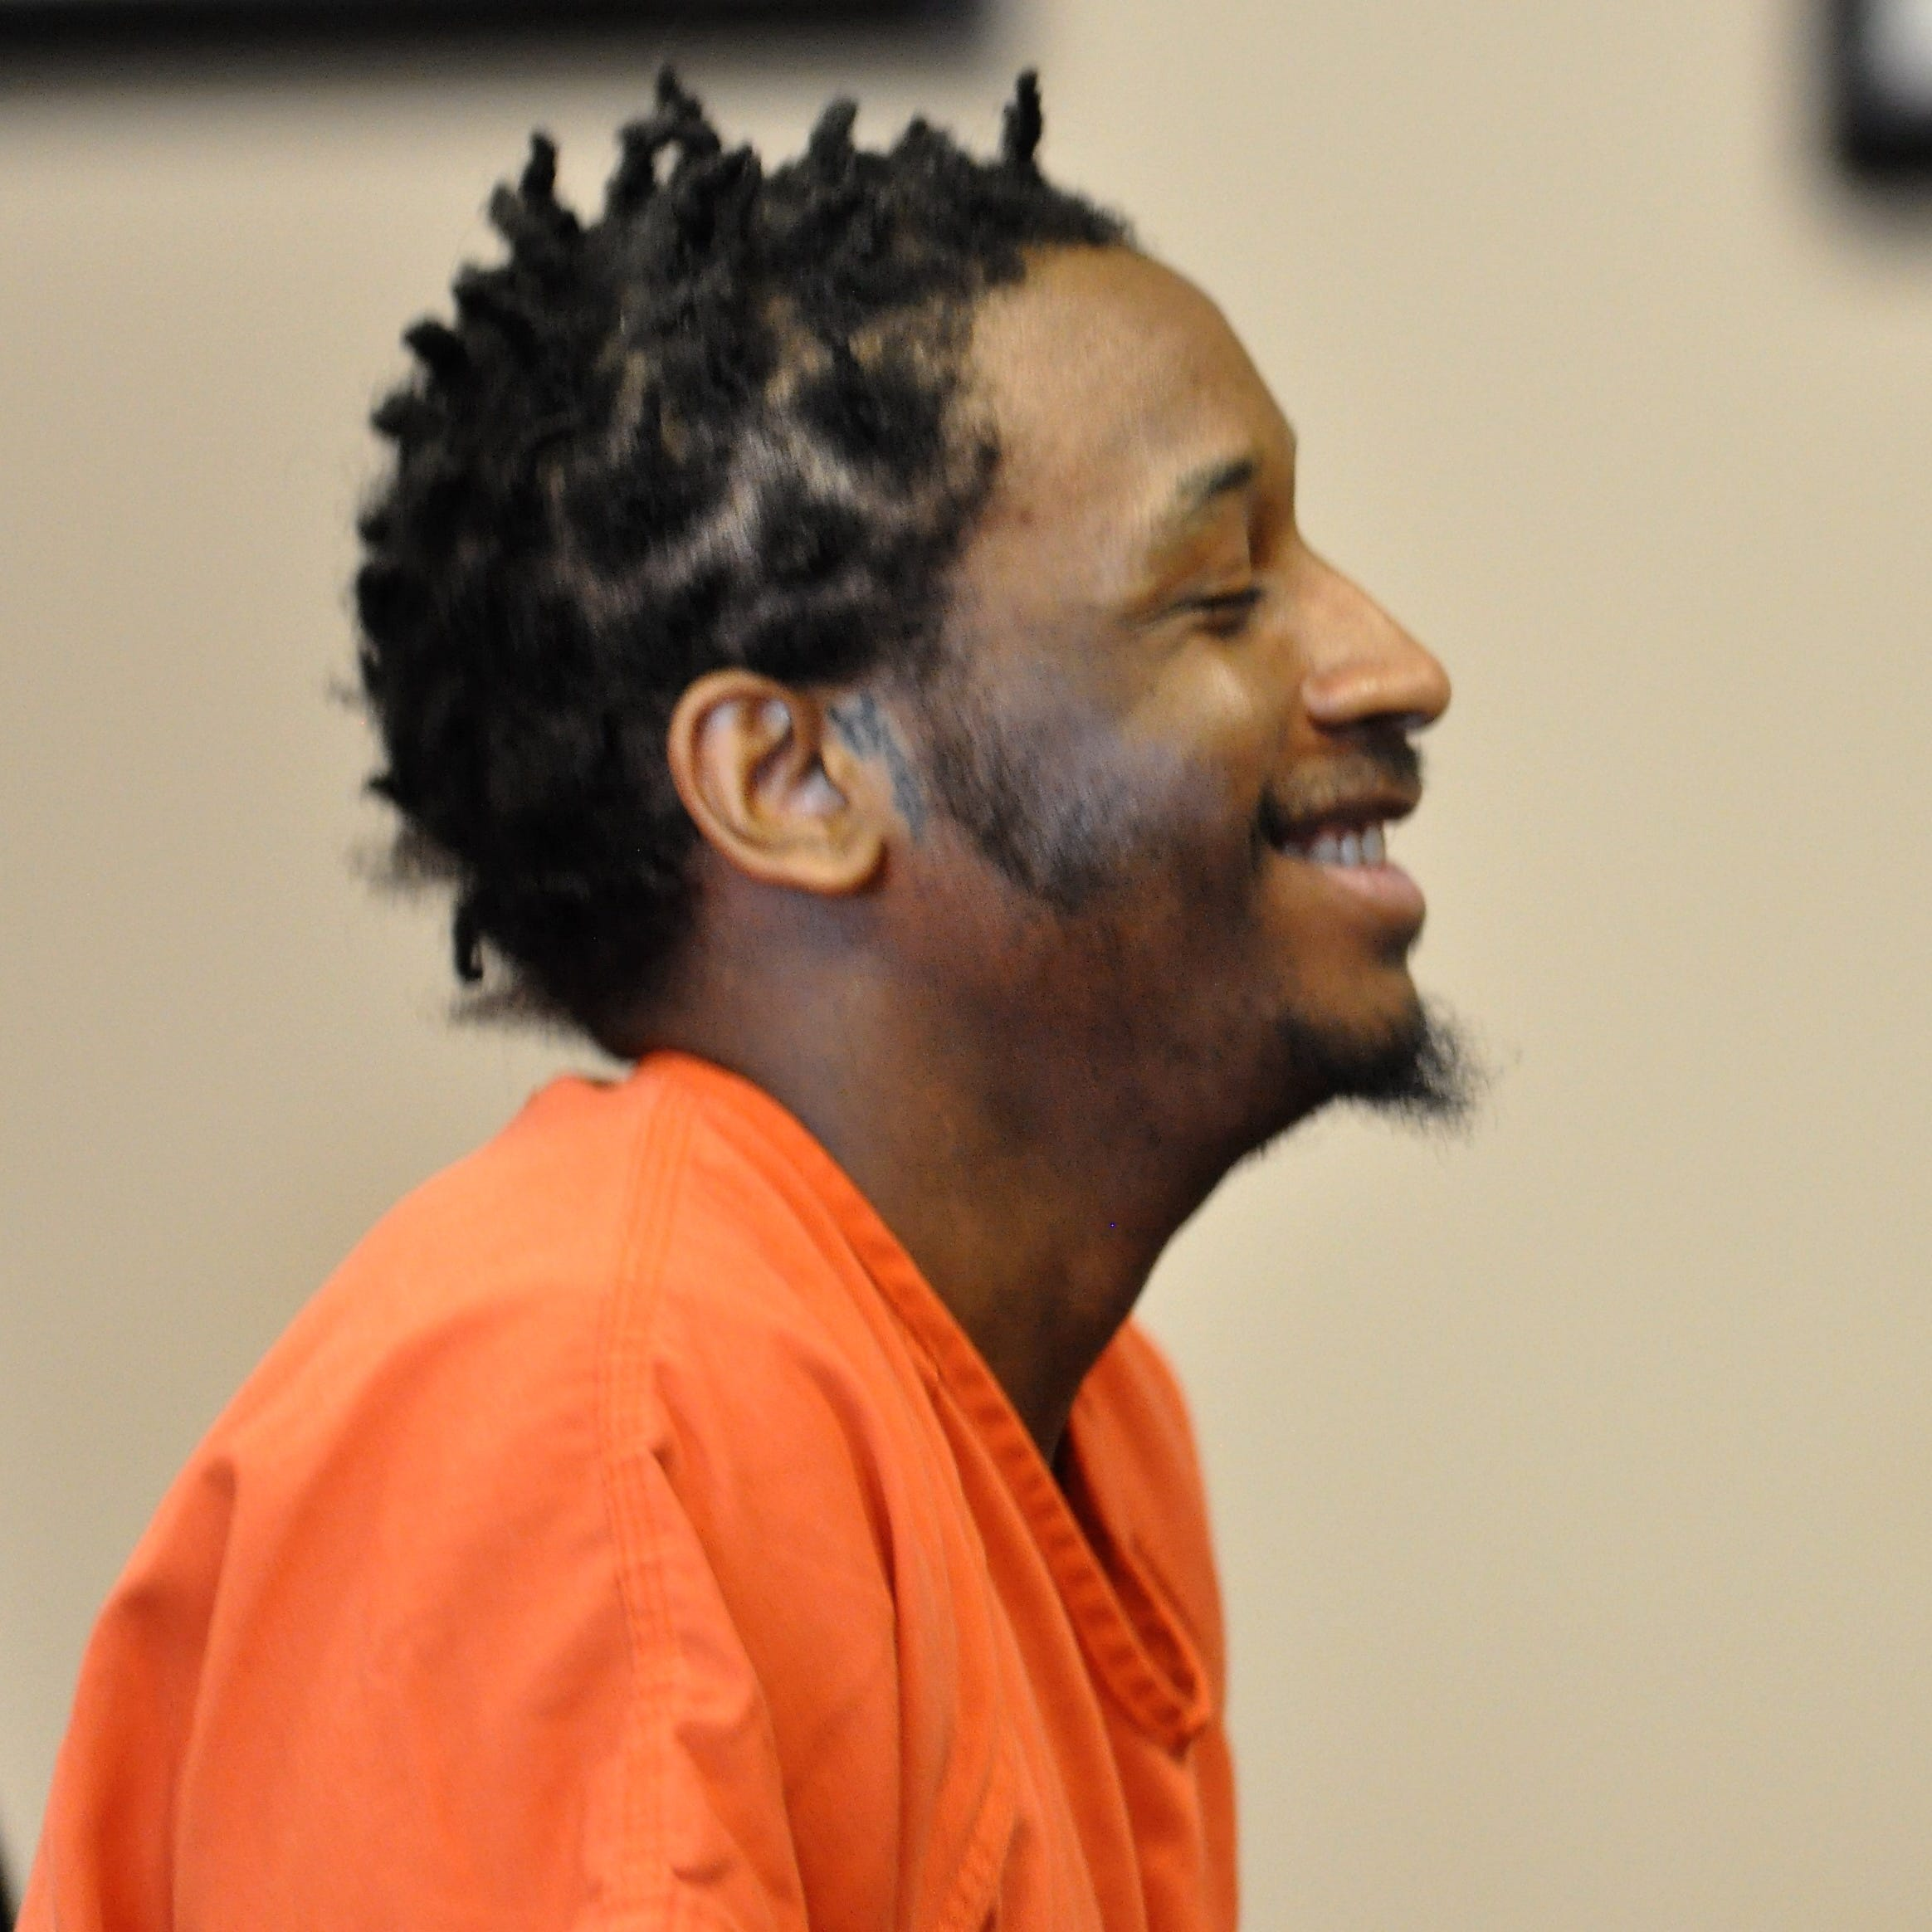 Man convicted of downtown Port Washington shooting smiled after he received an 18-year prison sentence